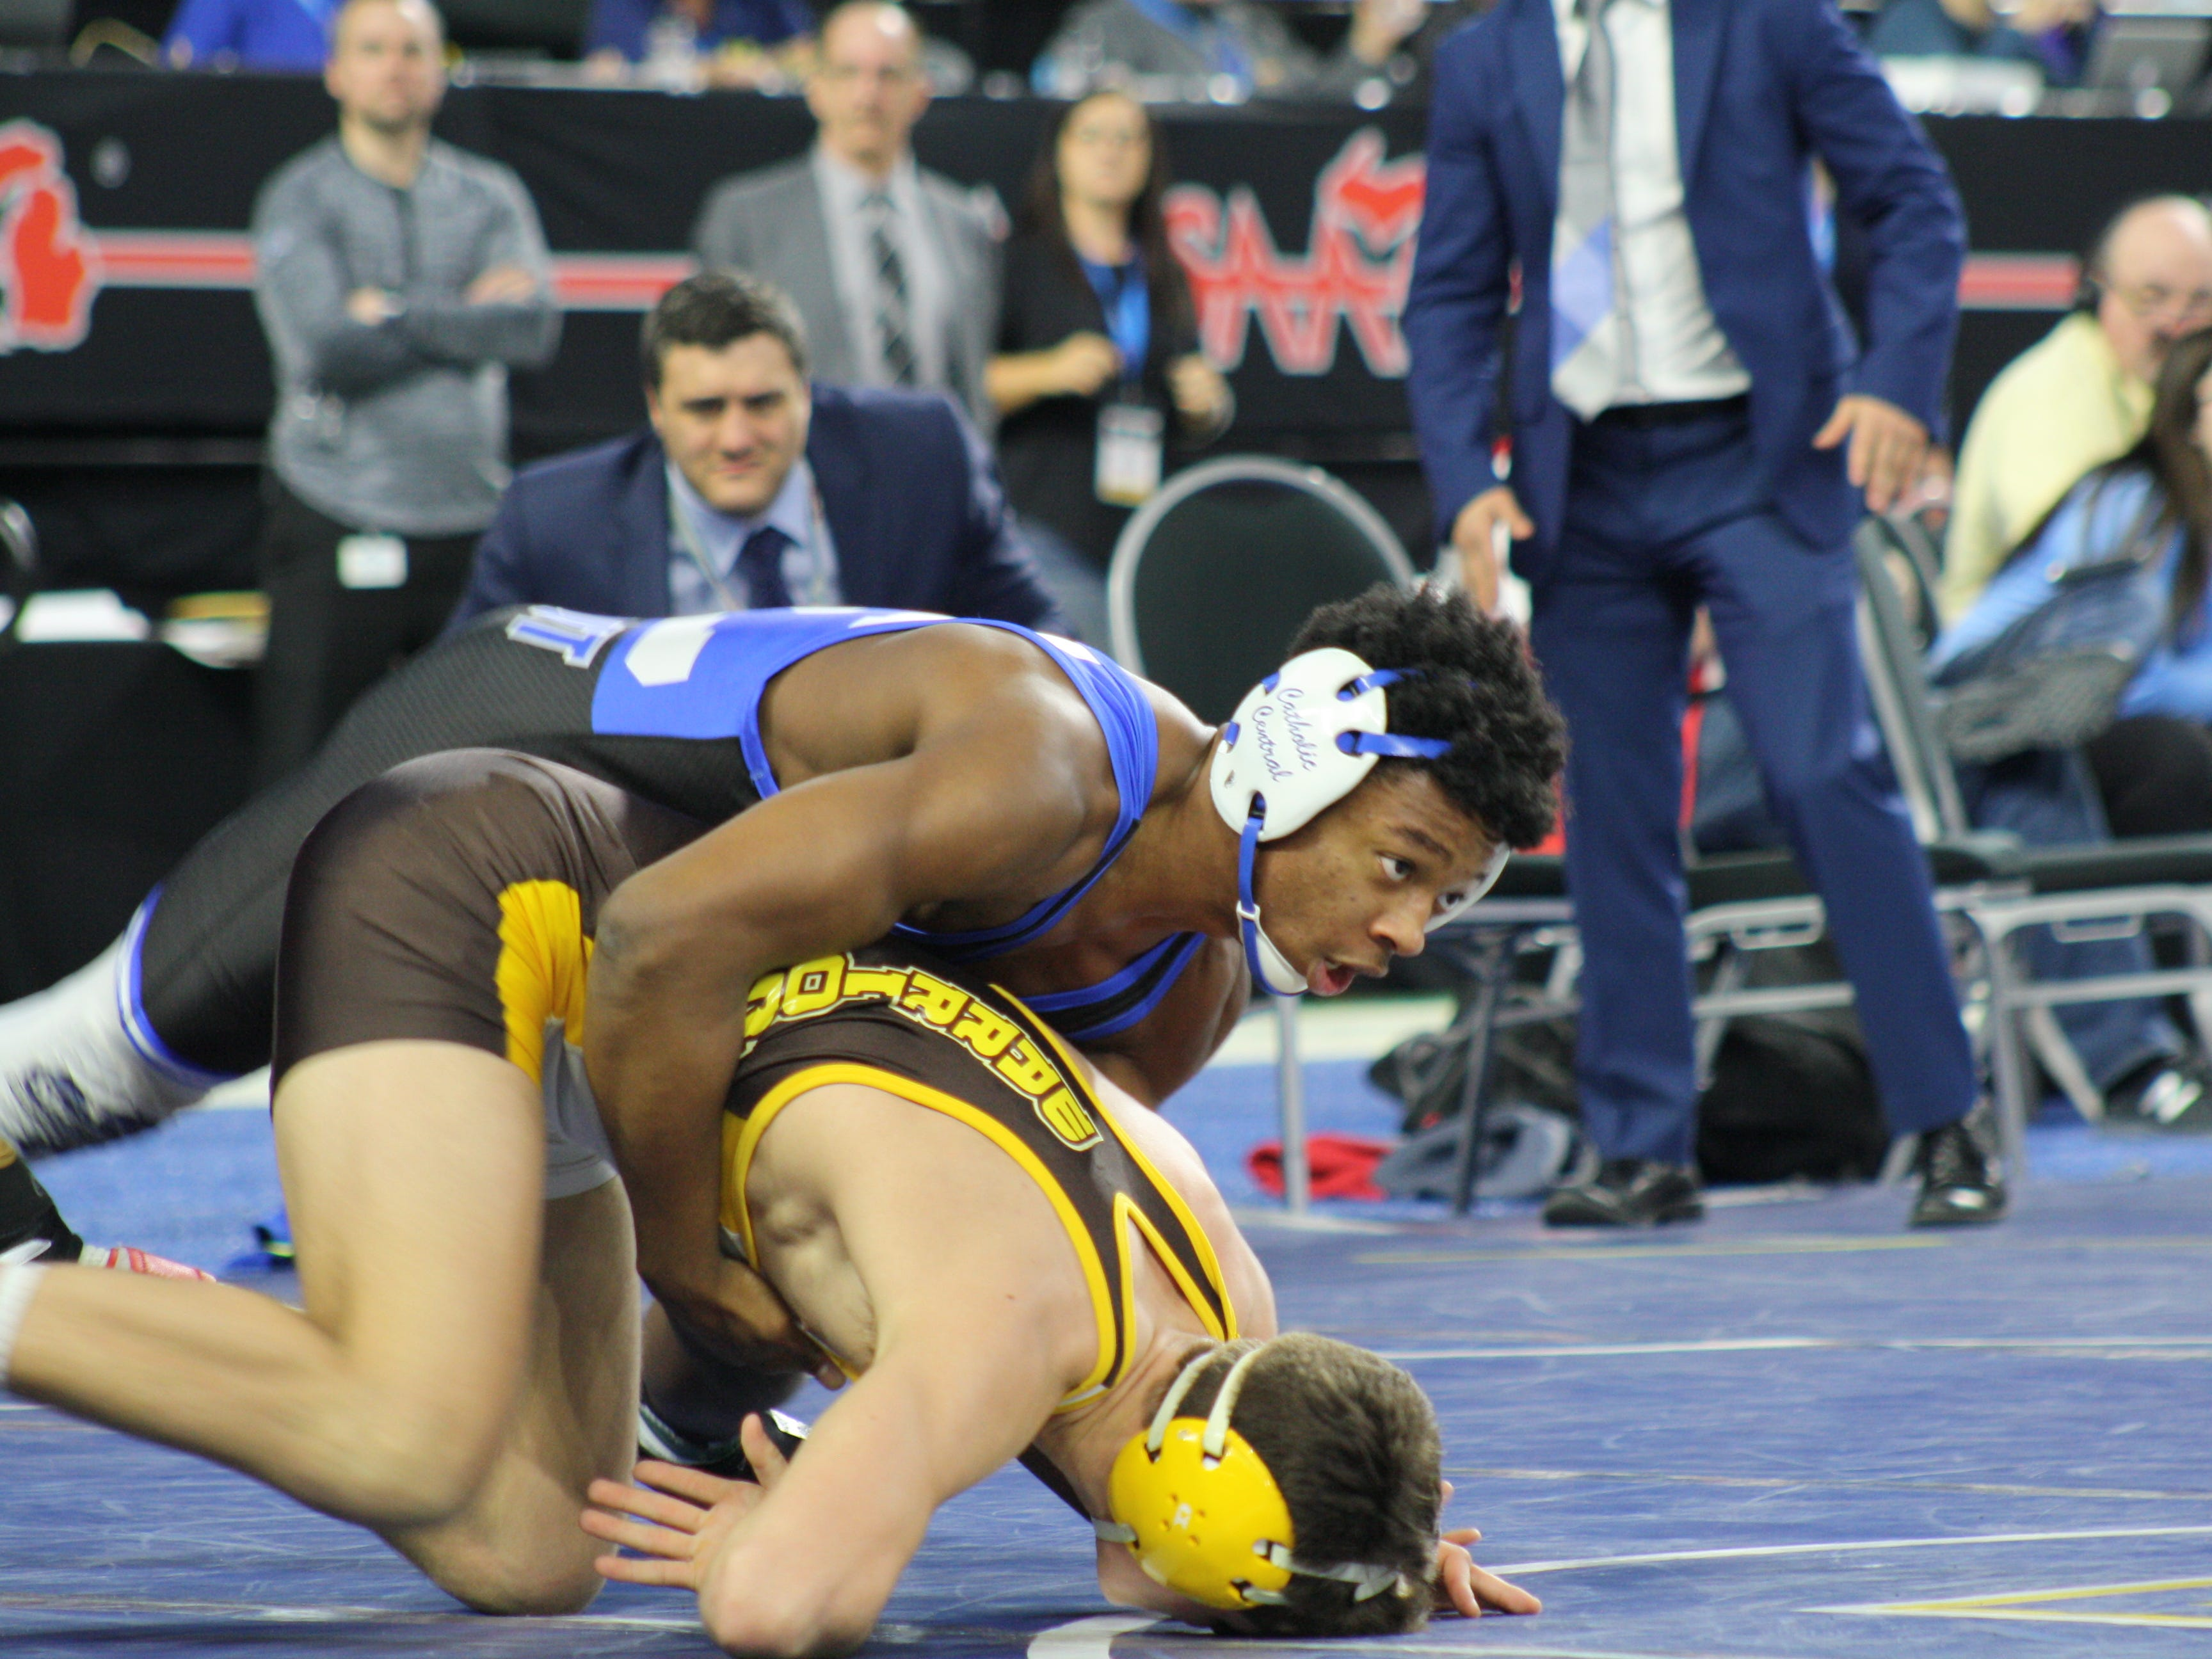 Kevon Davenport of Novi Detroit Catholic Central gets the edge on Vic Schoenherr of Bay City Western in Saturday's finals at Ford Field.